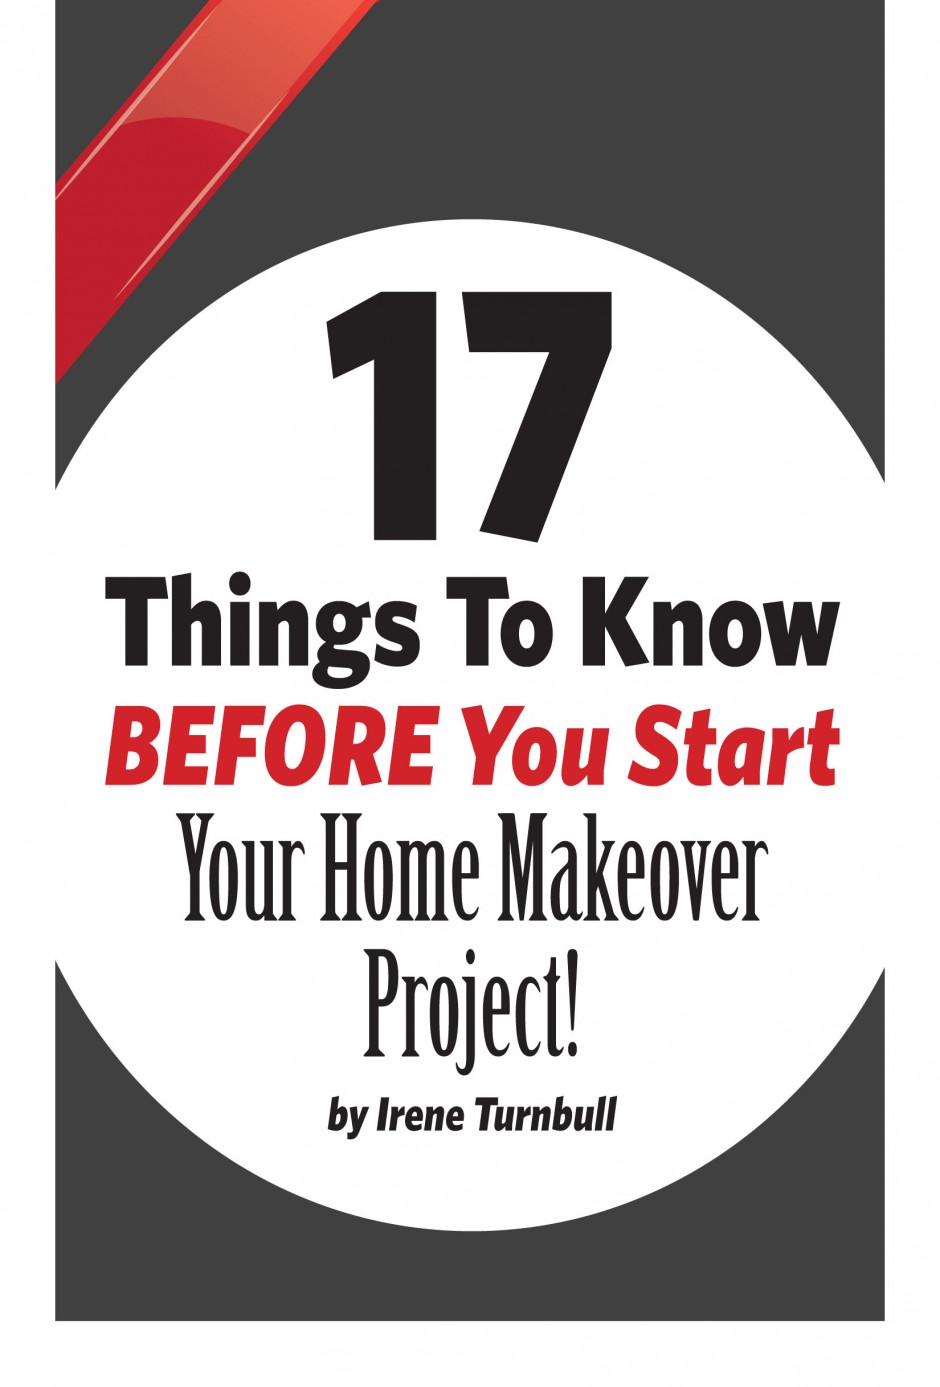 17 Things To Know Before You Start Your Home Make-Over Project